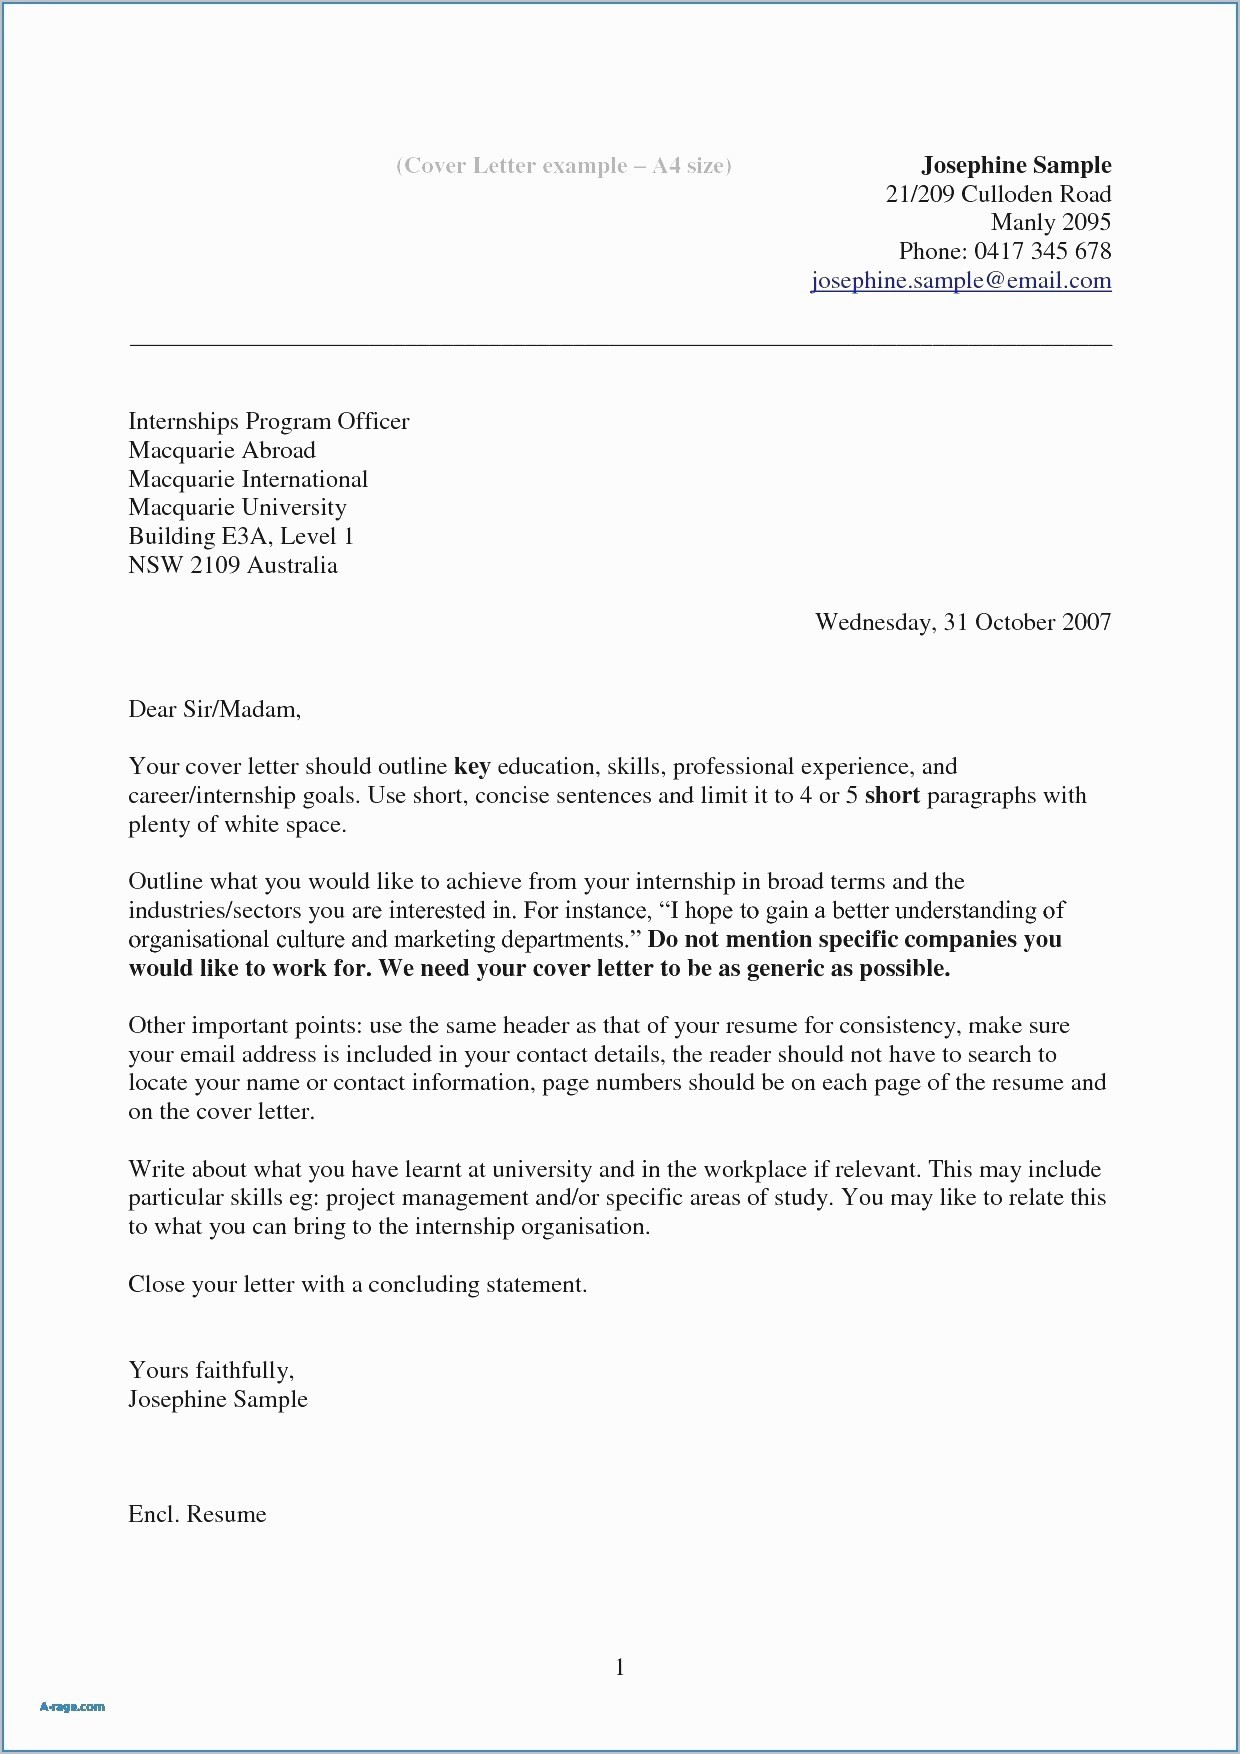 Federal Cover Letter Template - Resume Writing Panies Awesome Resume Writing Panies Lovely Email